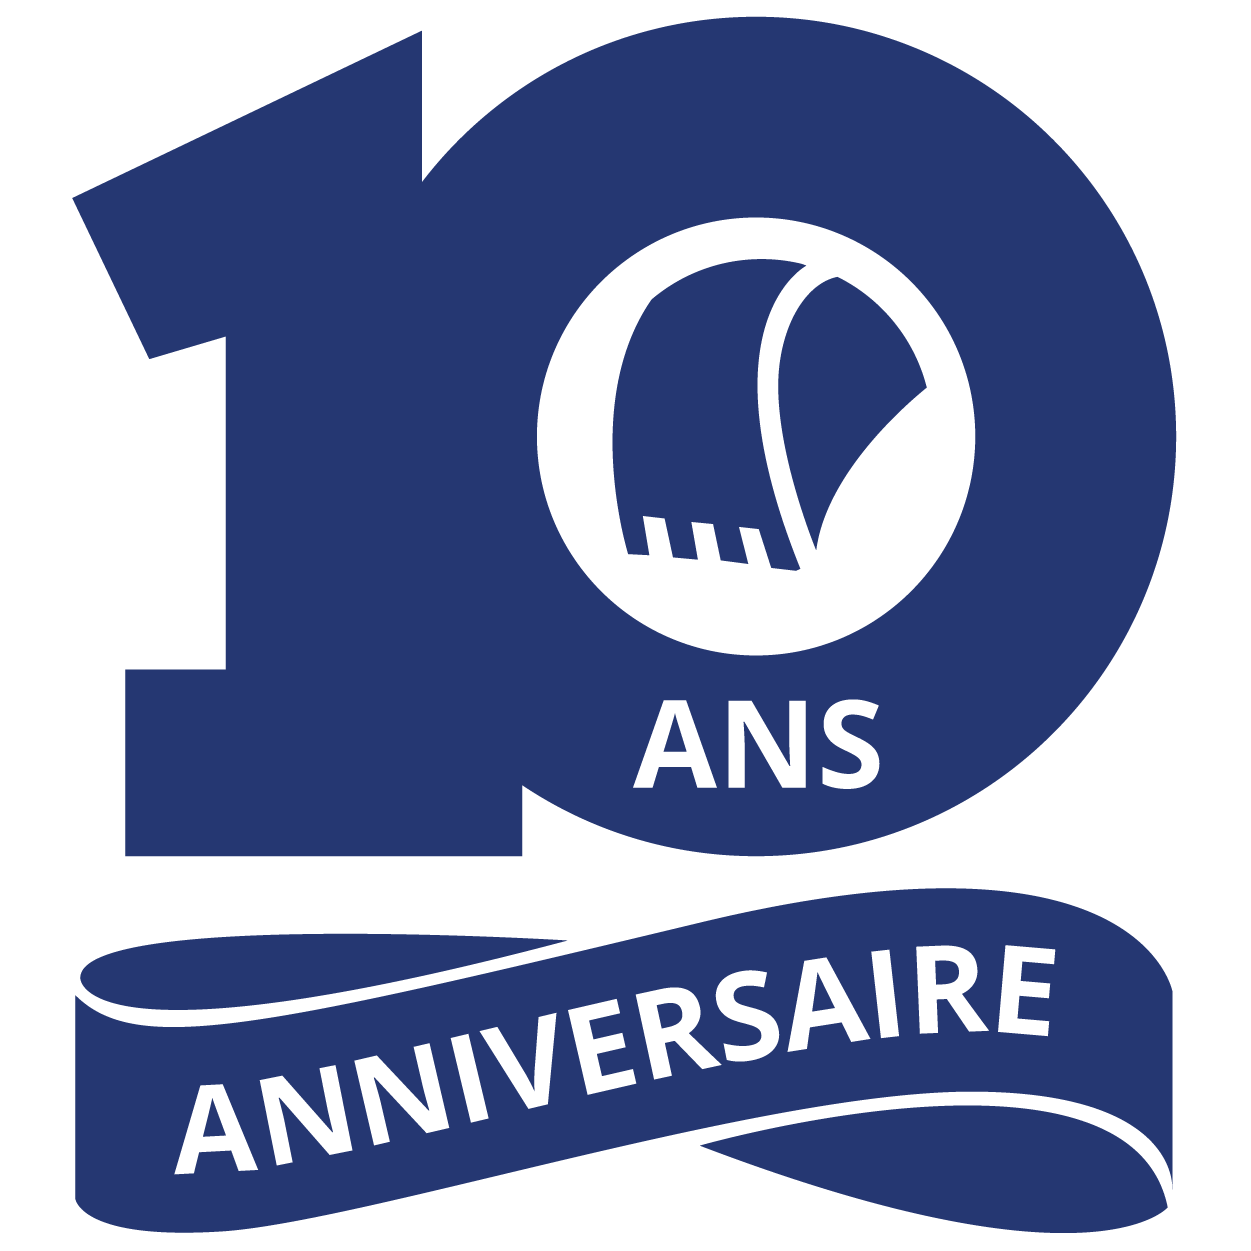 Operation Anniversaire